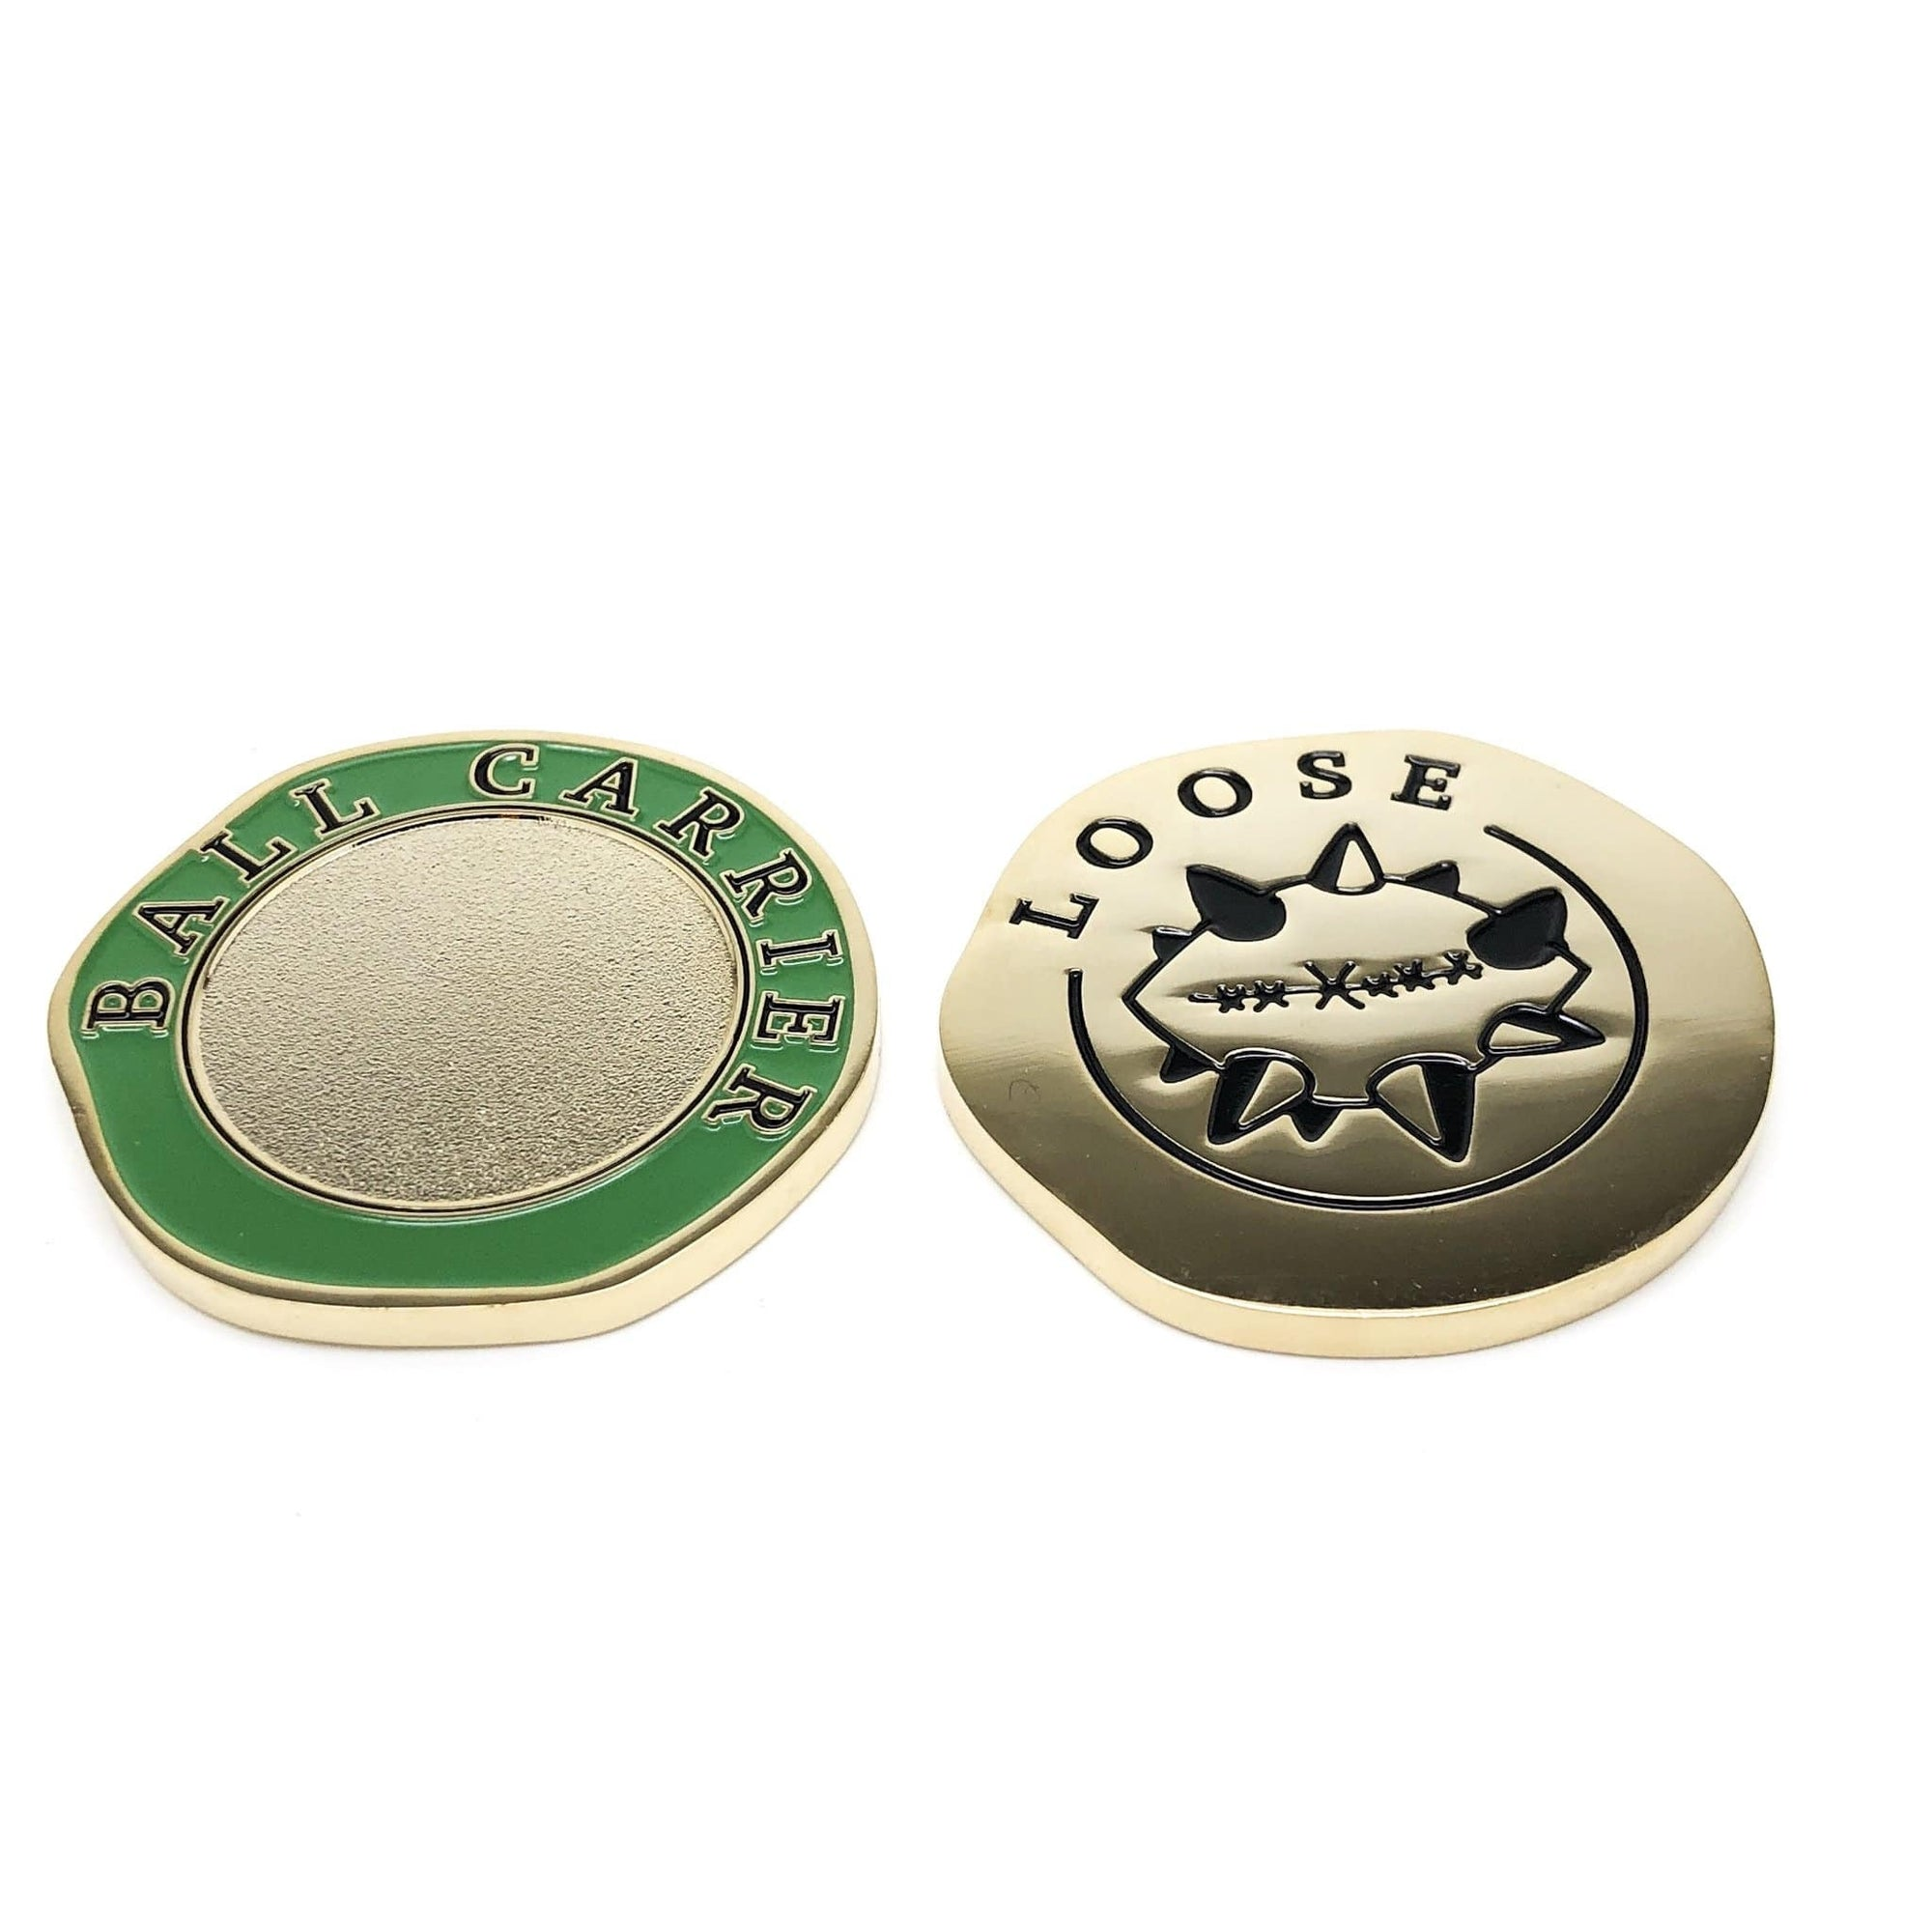 Exit 23 Games Accessories Ball Token